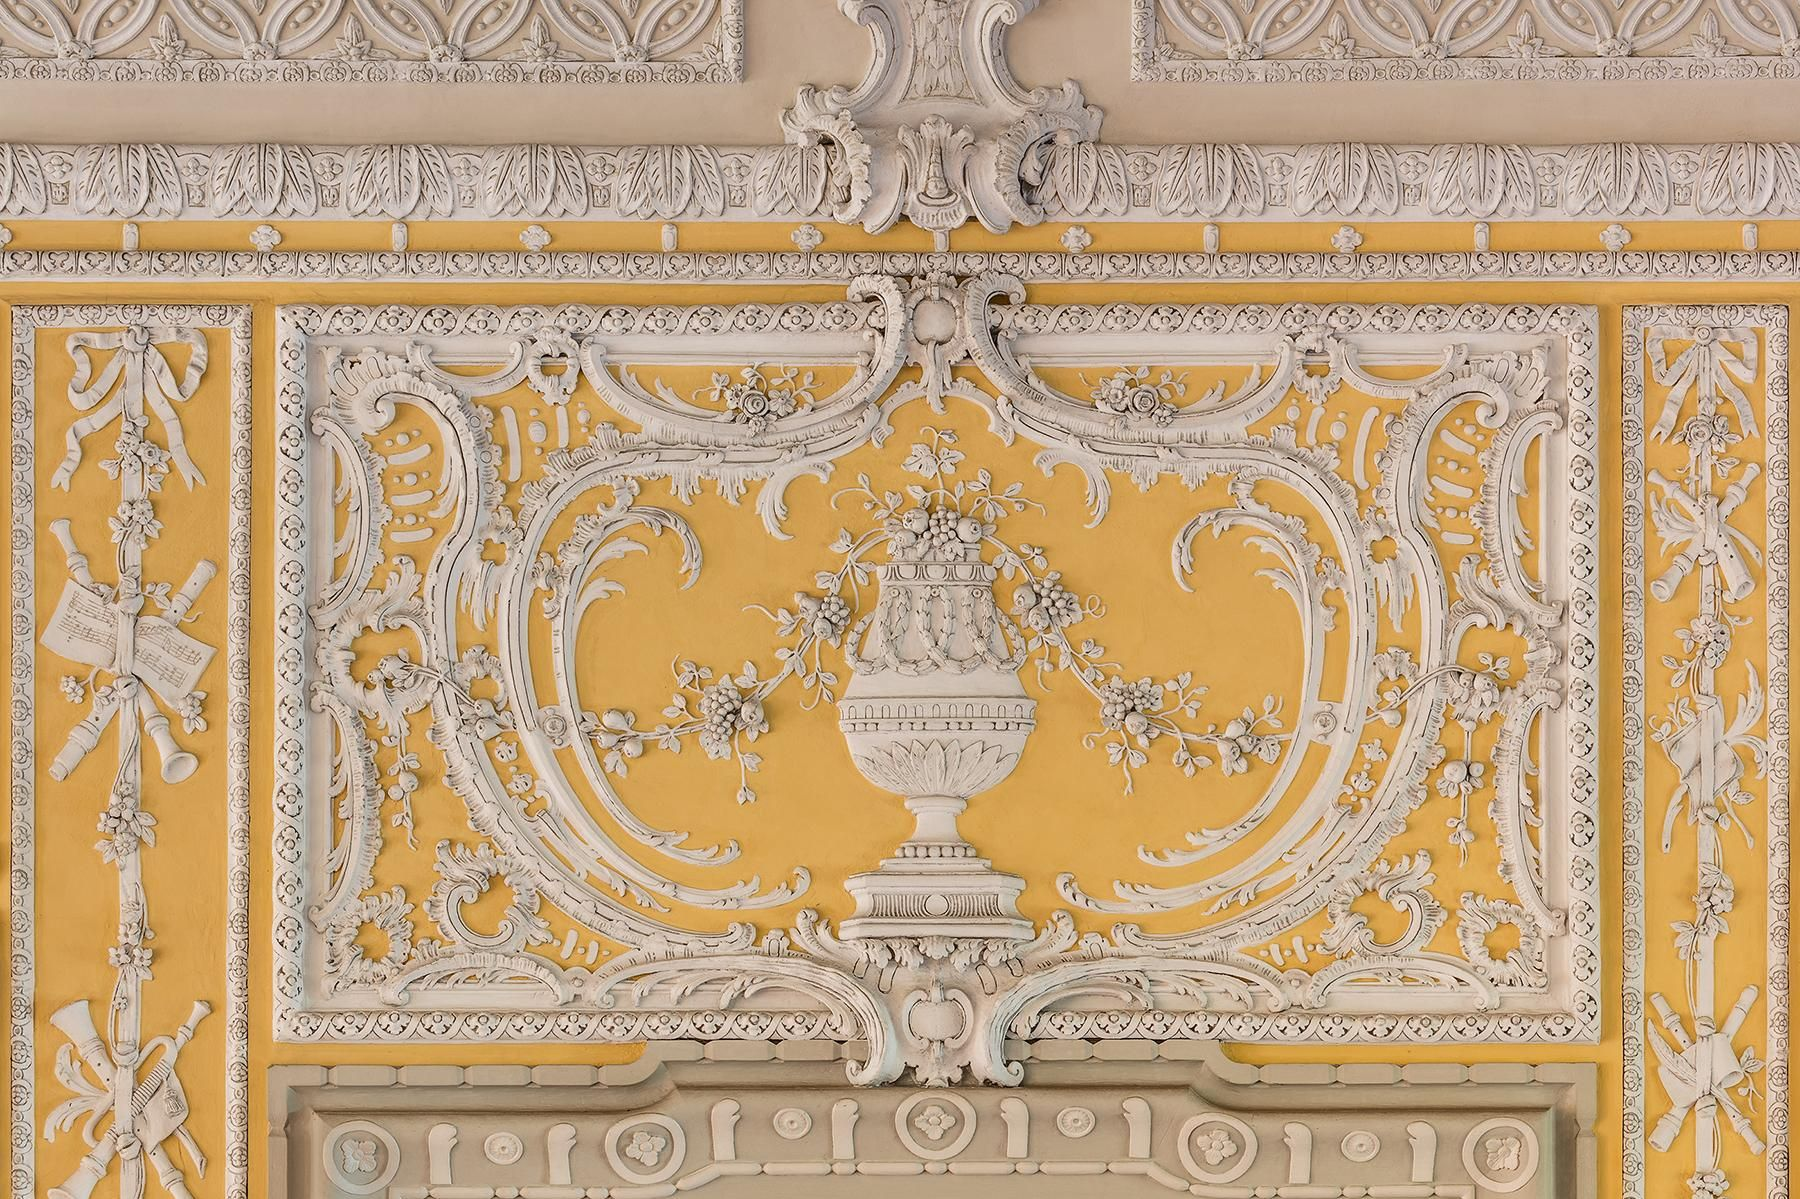 Schloss Bruchsal, chamber wing, chamber music hall, stucco decoration; Photo: Dr. Manfred Schneider, Nußloch, www.manfred-schneider.de